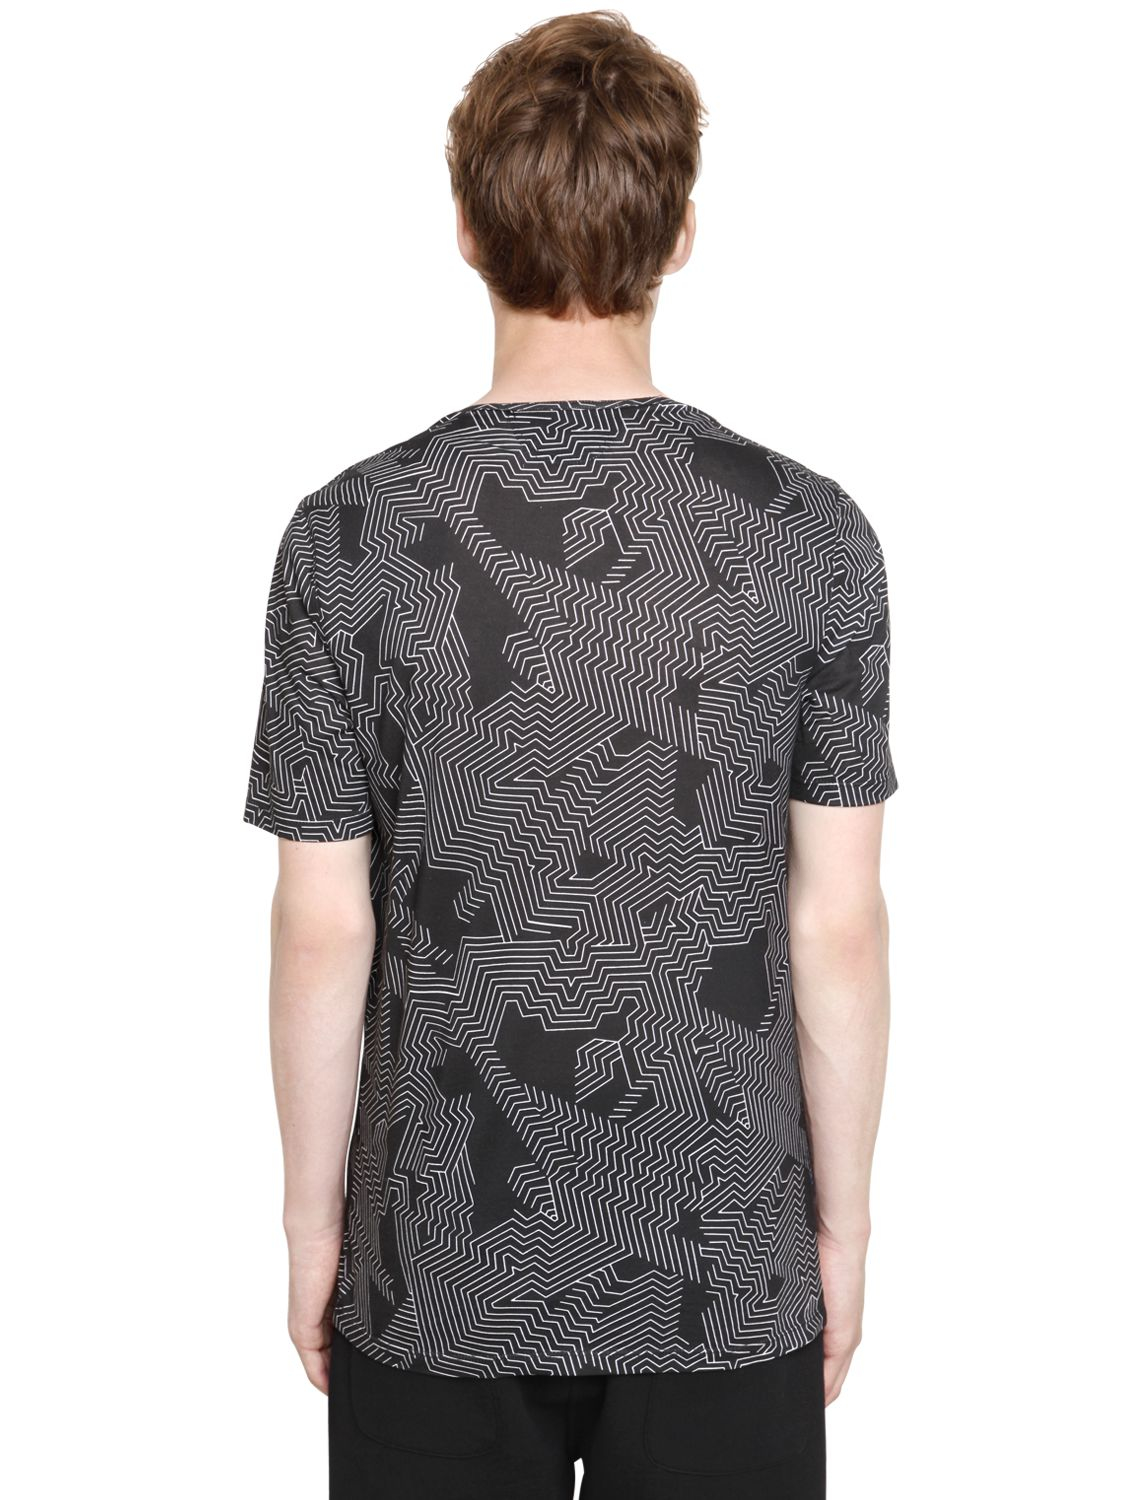 helmut lang labyrinth print short sleeve t shirt in black. Black Bedroom Furniture Sets. Home Design Ideas